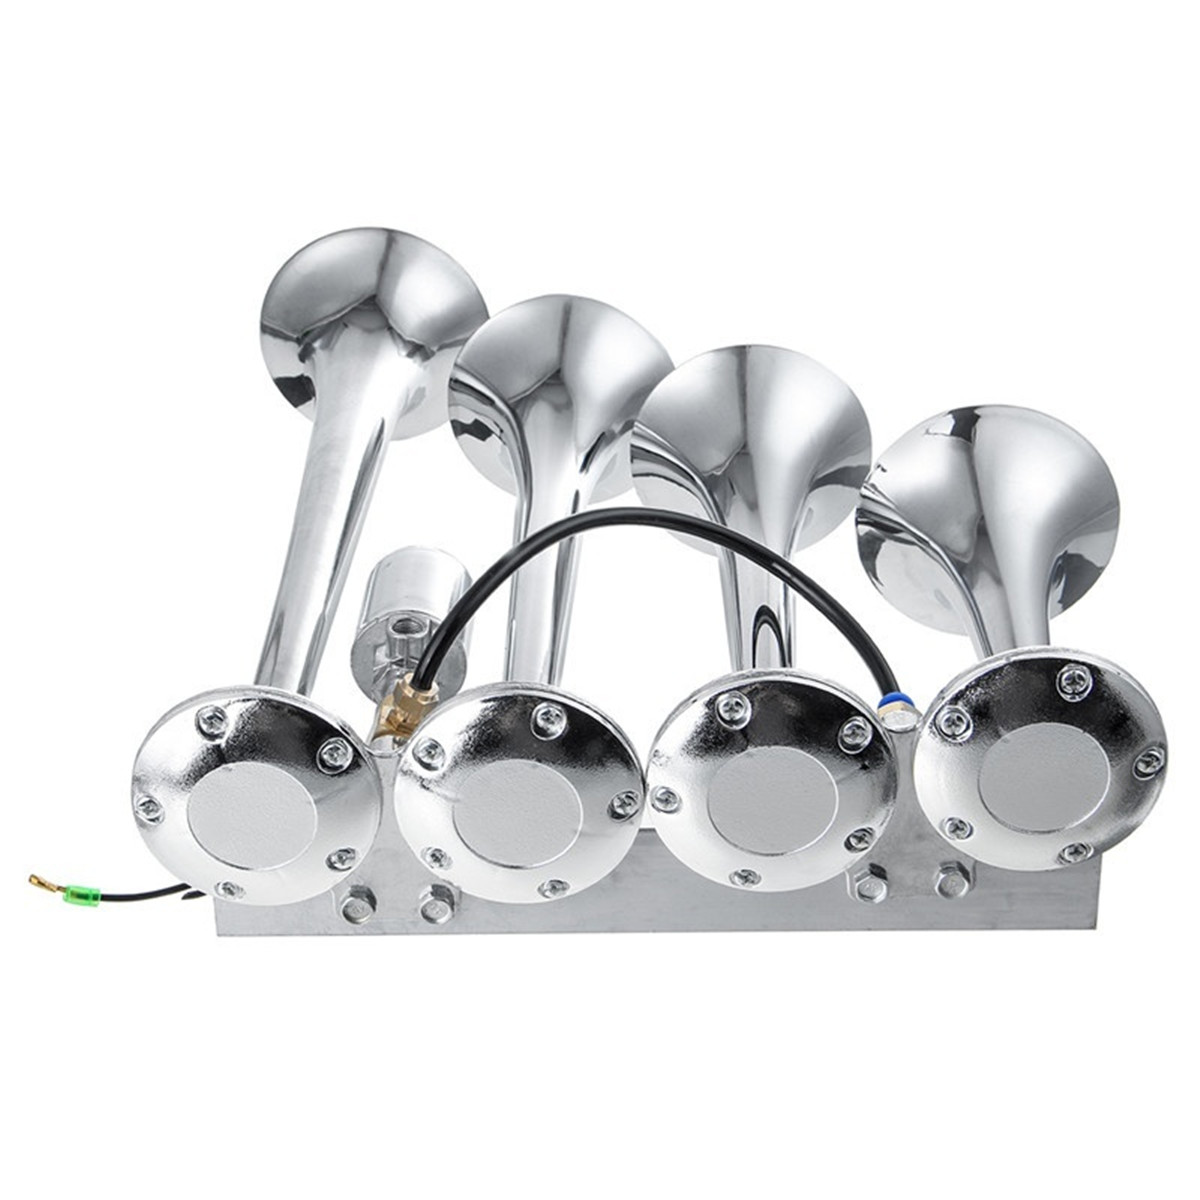 24V Four Trumpet Electric Horn Electronically Controlled Air Horn For Heavy Truck Heavy Truck